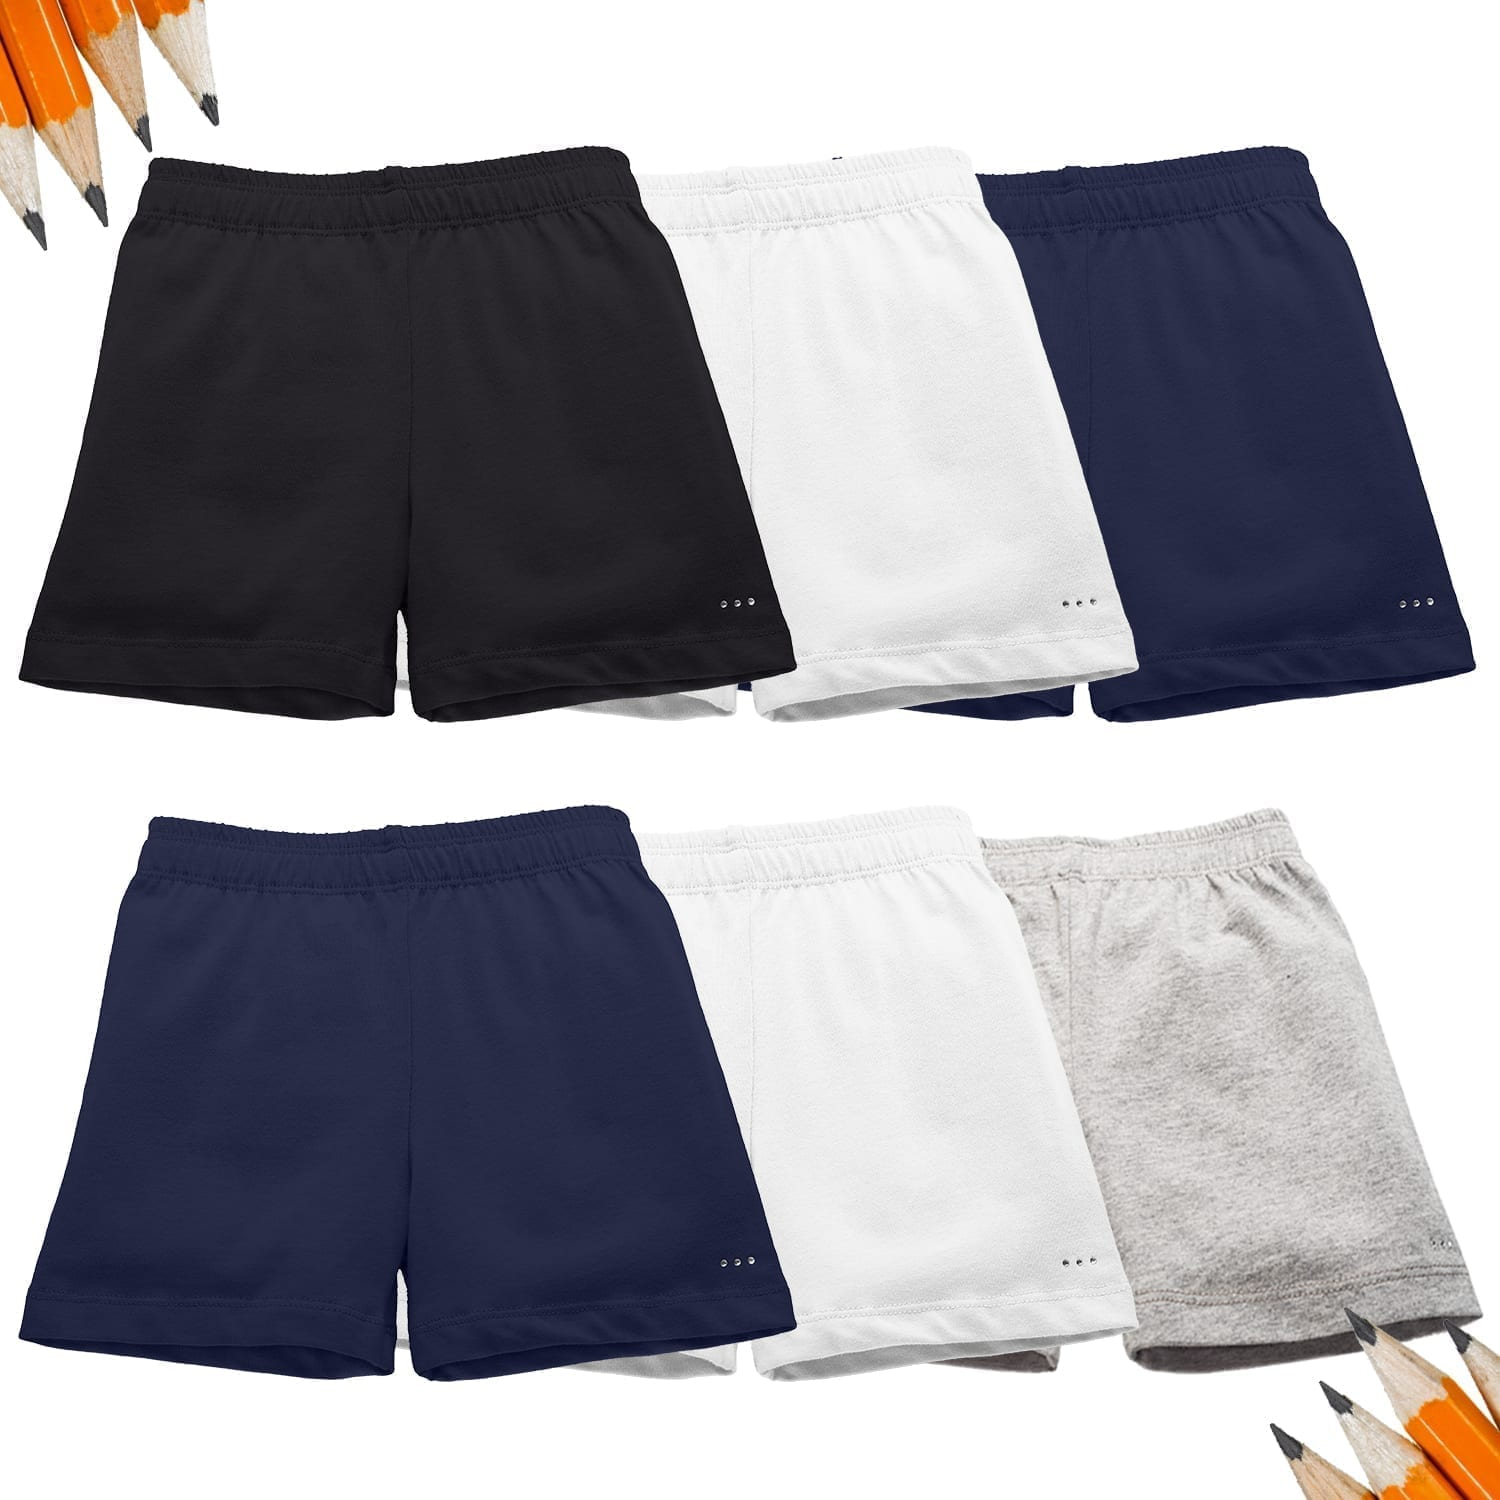 school essential shorts set with pencils